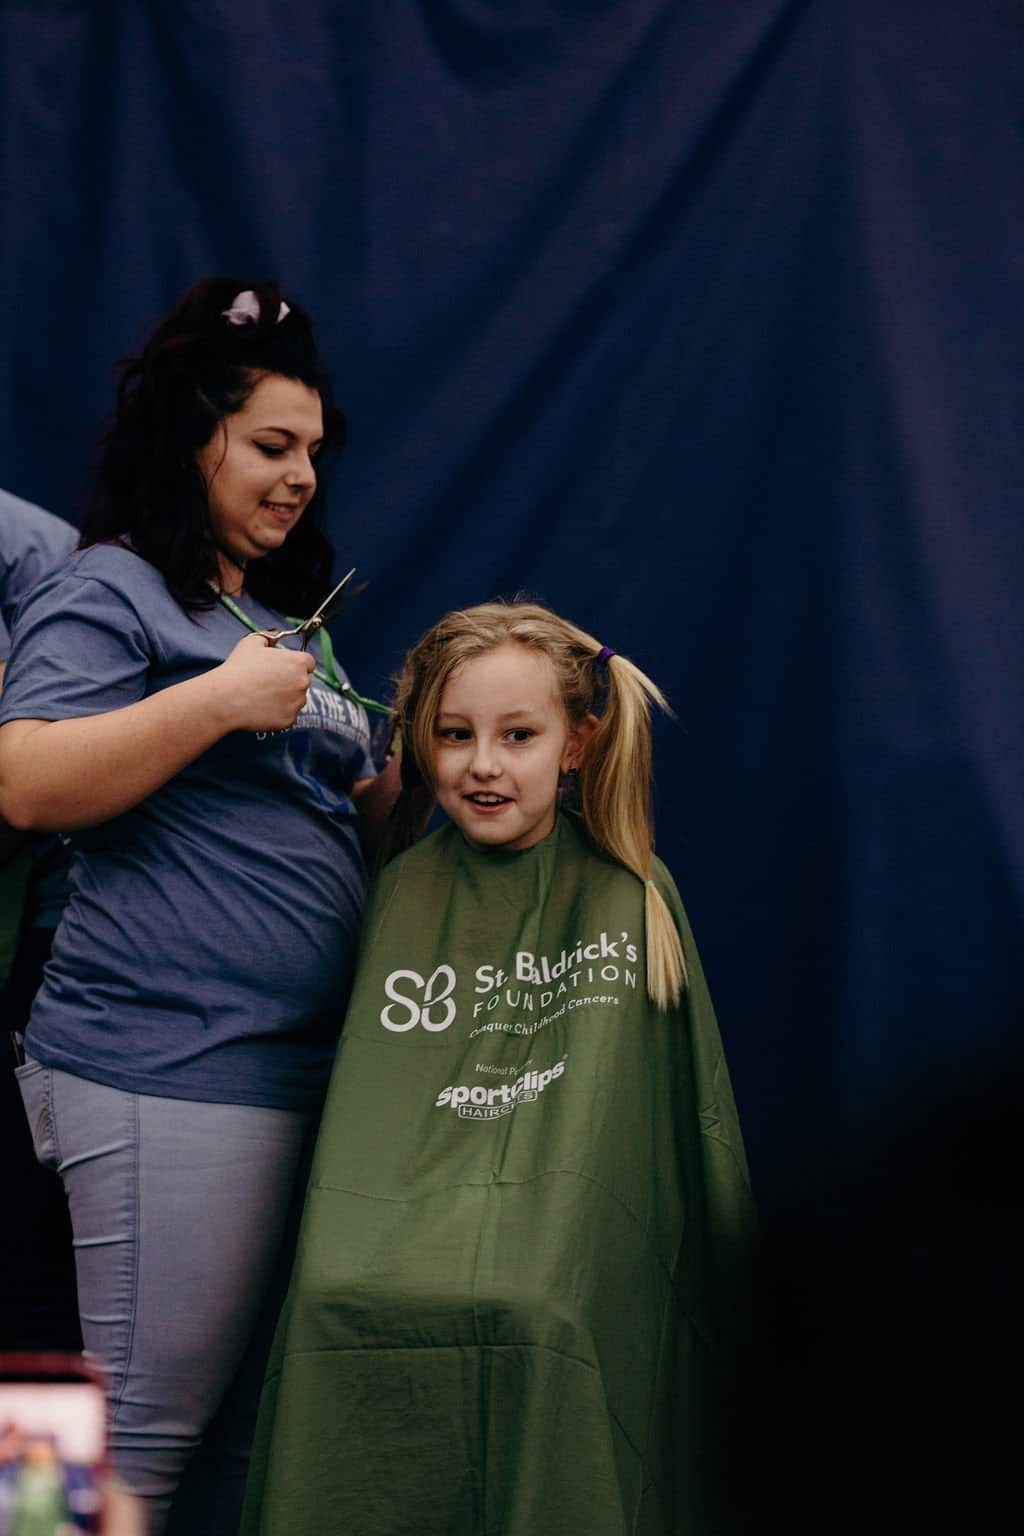 St. Baldricks | I bet you wouldn't shave your head 99